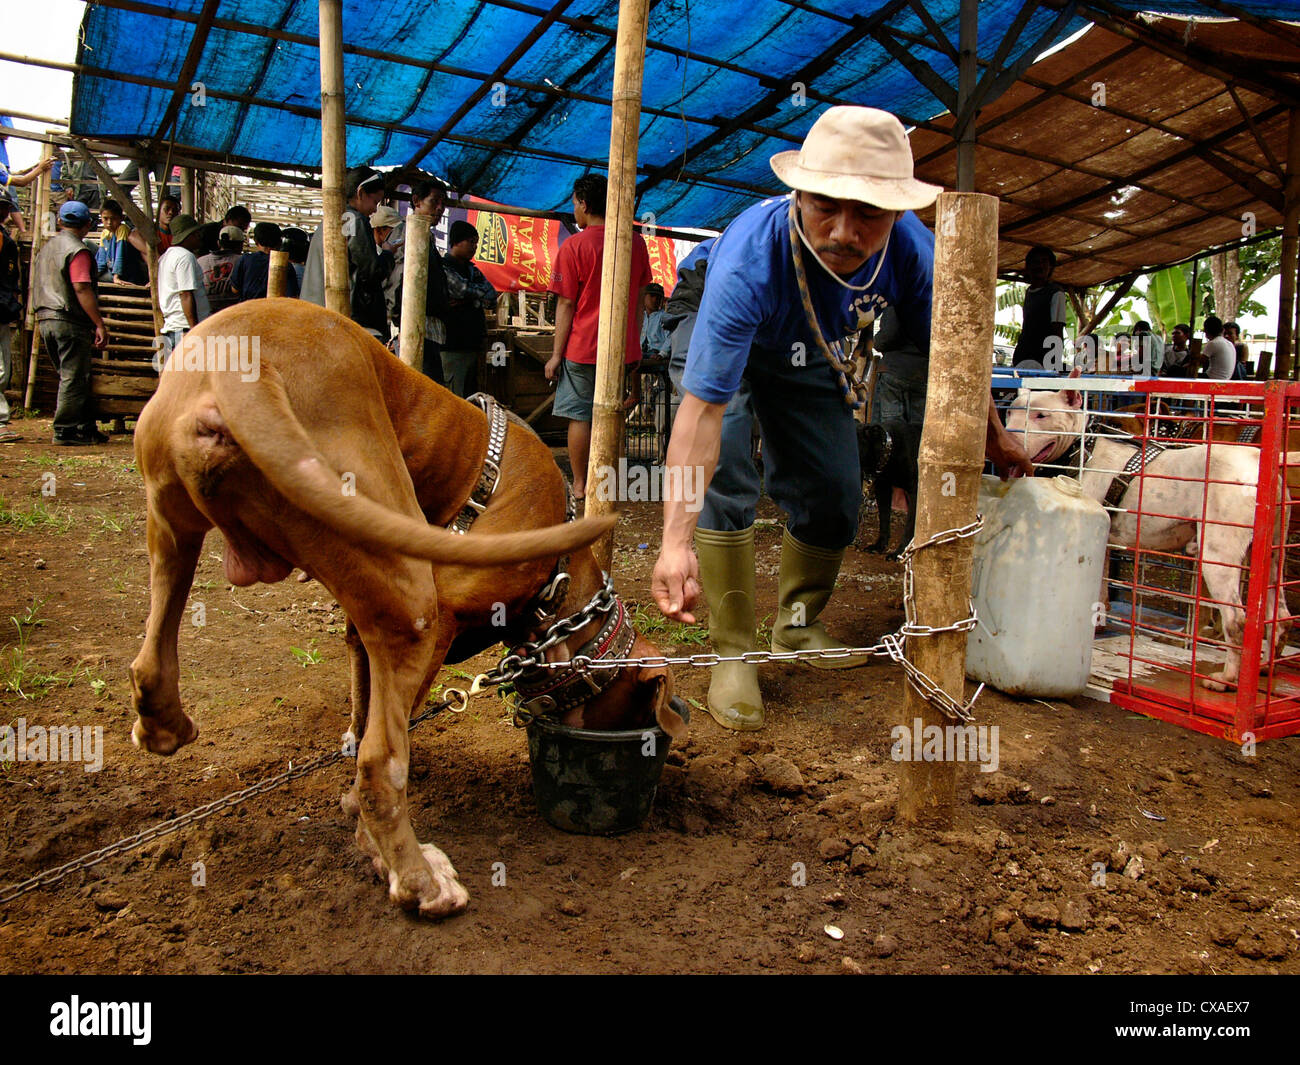 A member of a dog-fighting club feeds his attack-dog during a legal pig-baiting contest in West Java, Indonesia. - Stock Image